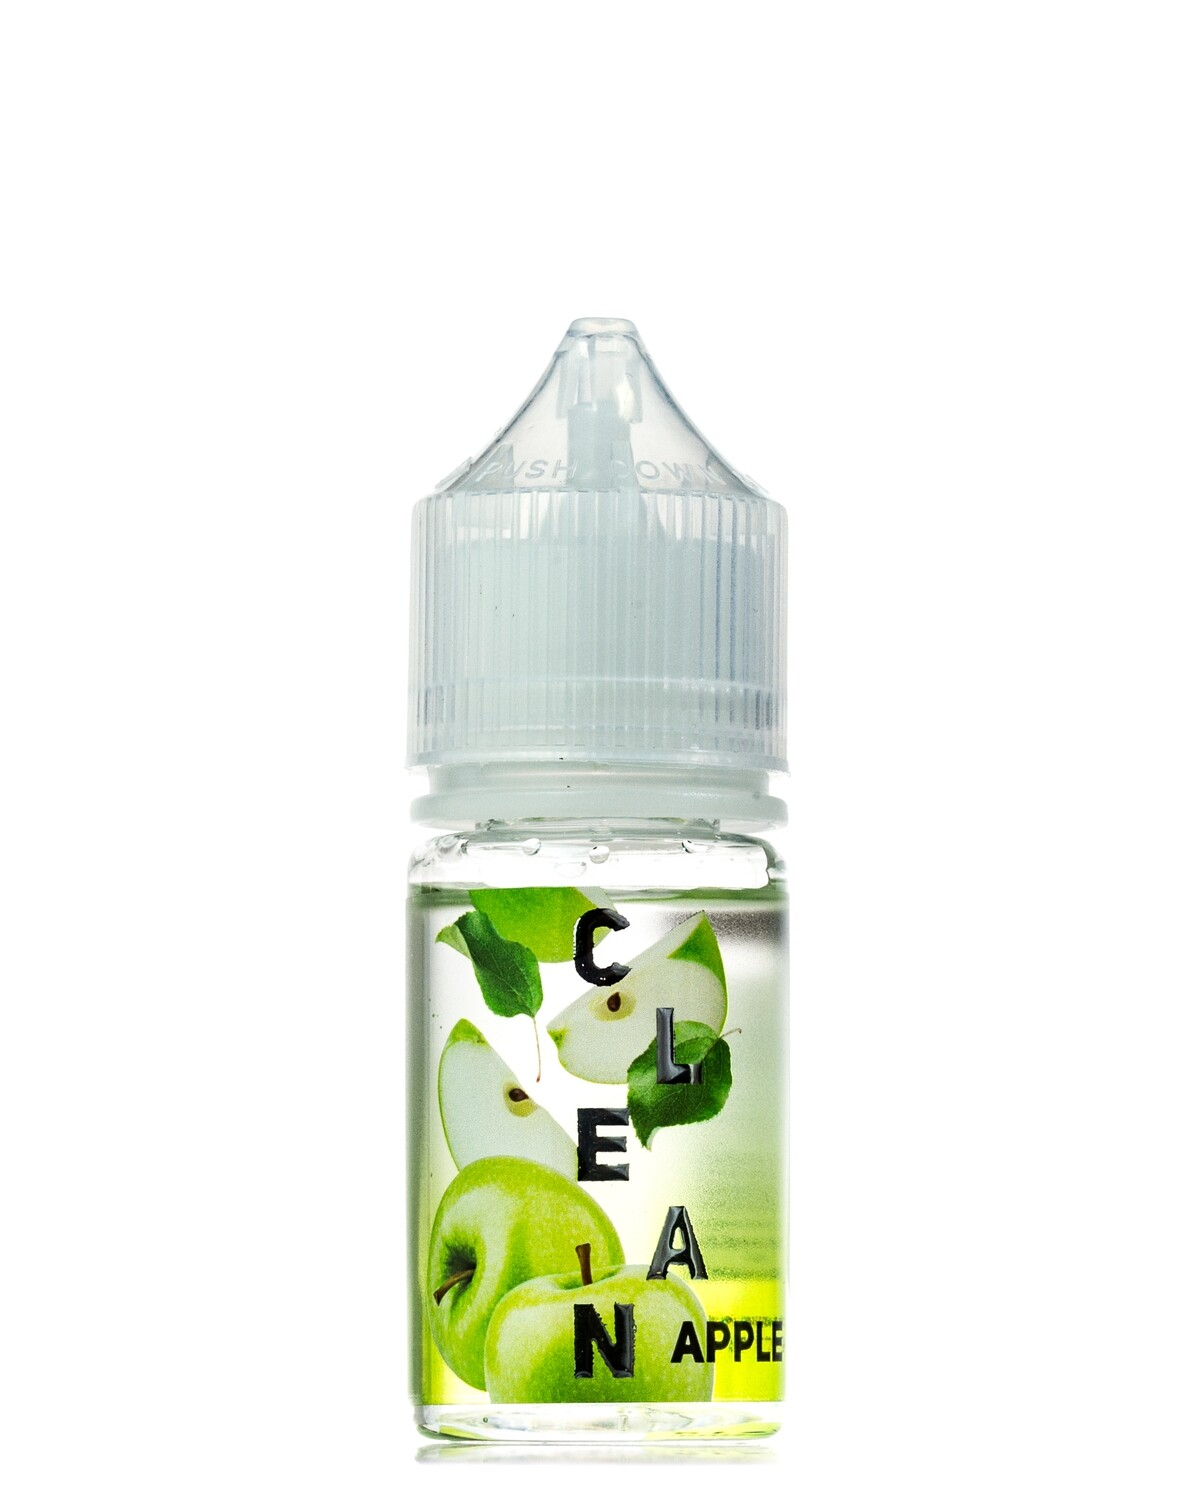 CLEAN BY ДЯДЯ ВОВА: APPLE 30ML 0MG